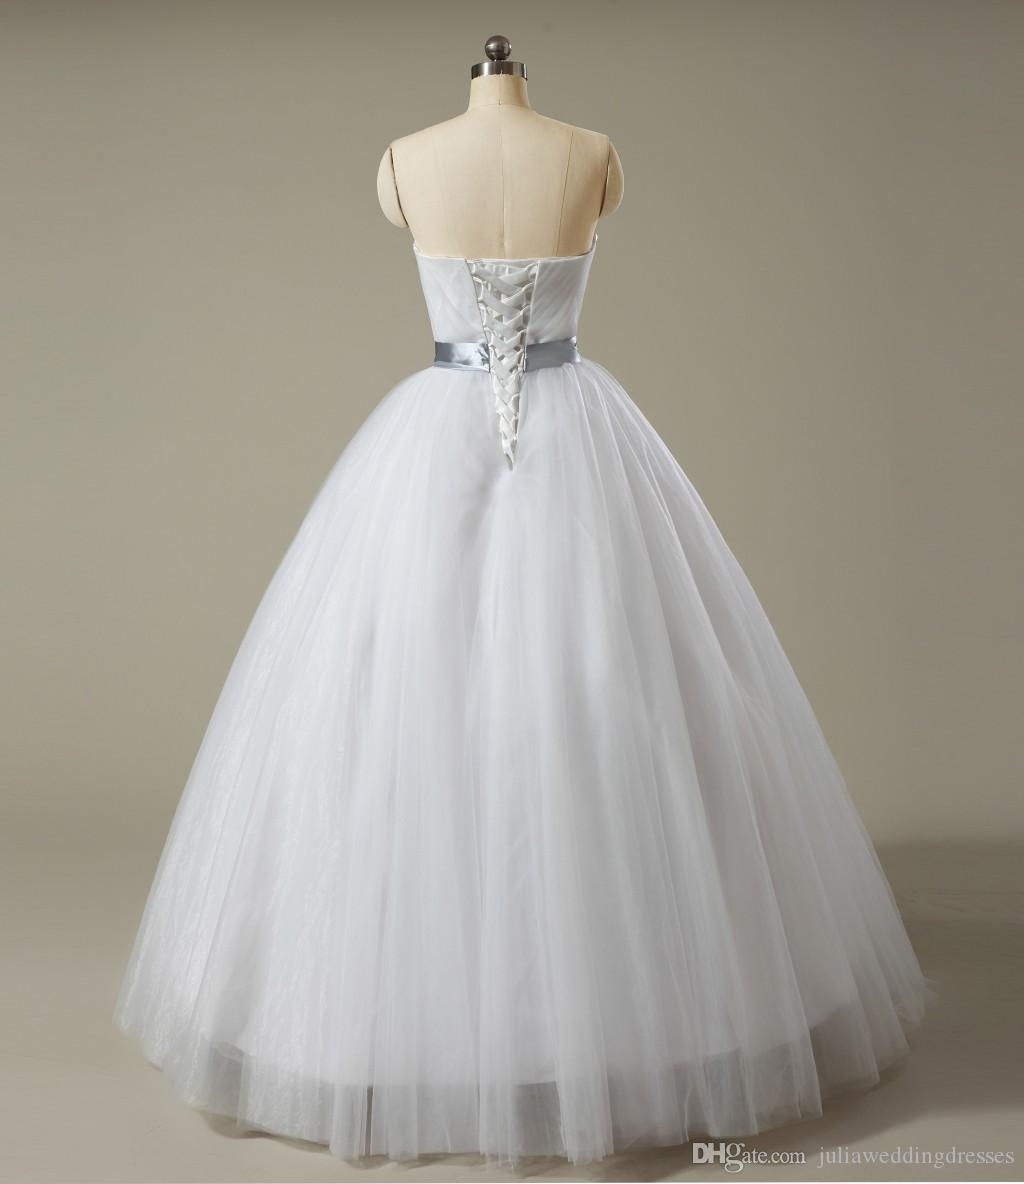 2018 Best Selling Cheap Stock Gorgeous Ball Gown Quinceanera Dresses Beaded Sweet 16 Dress Floor Length Pageant Formal Prom Gown Q13